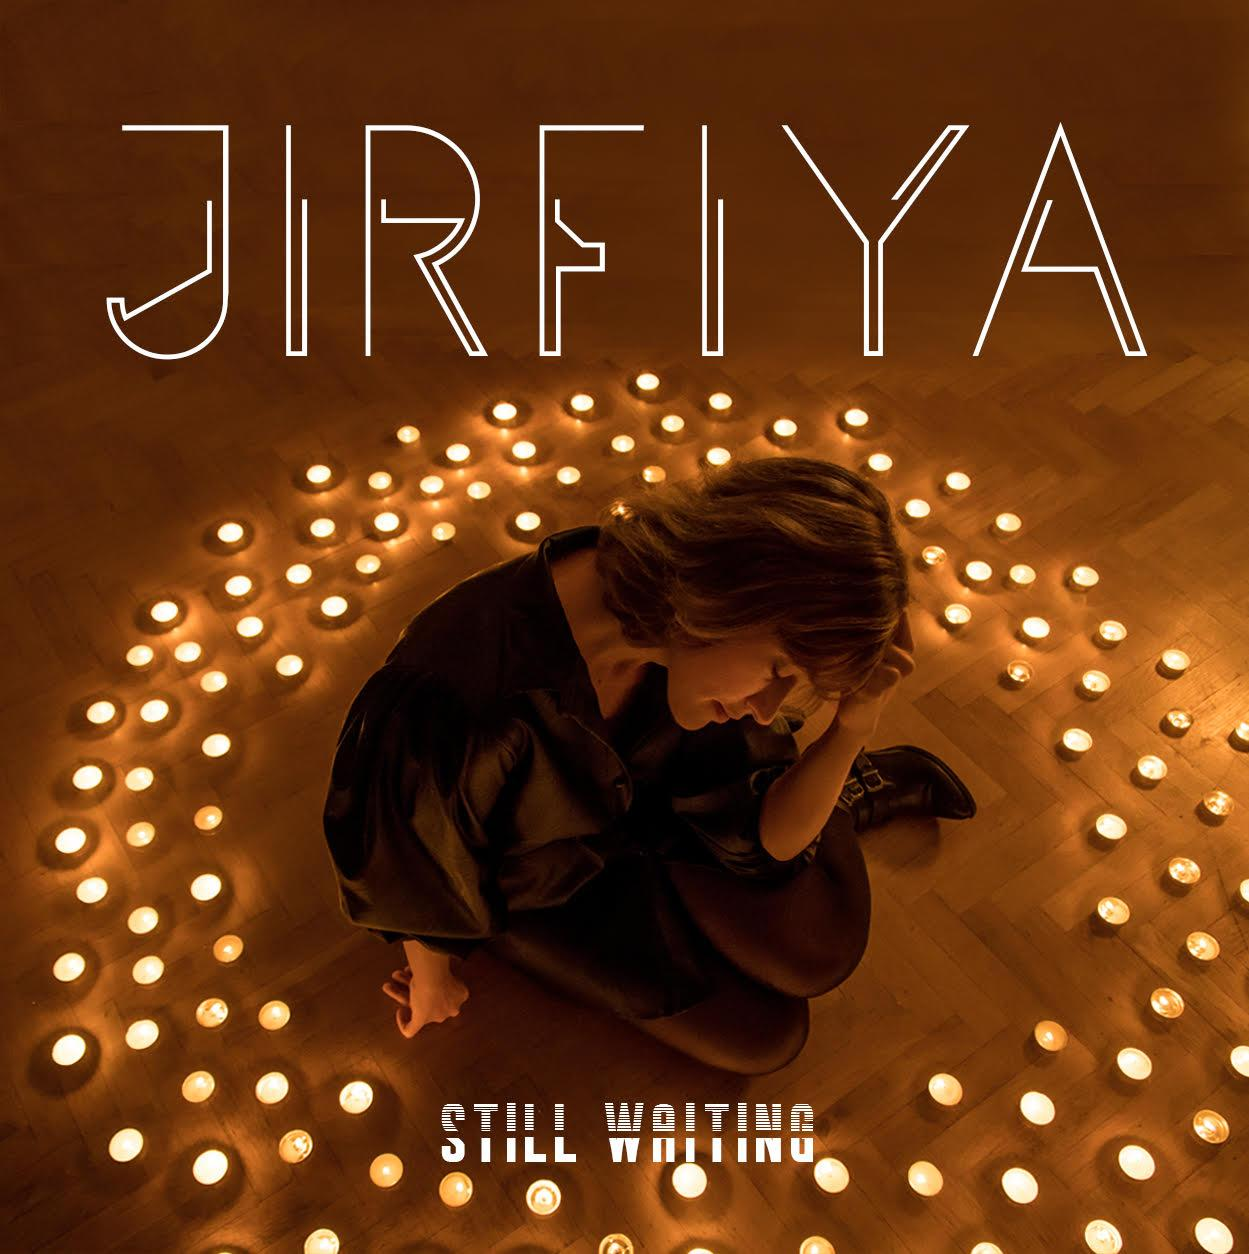 Still waiting jirfiya